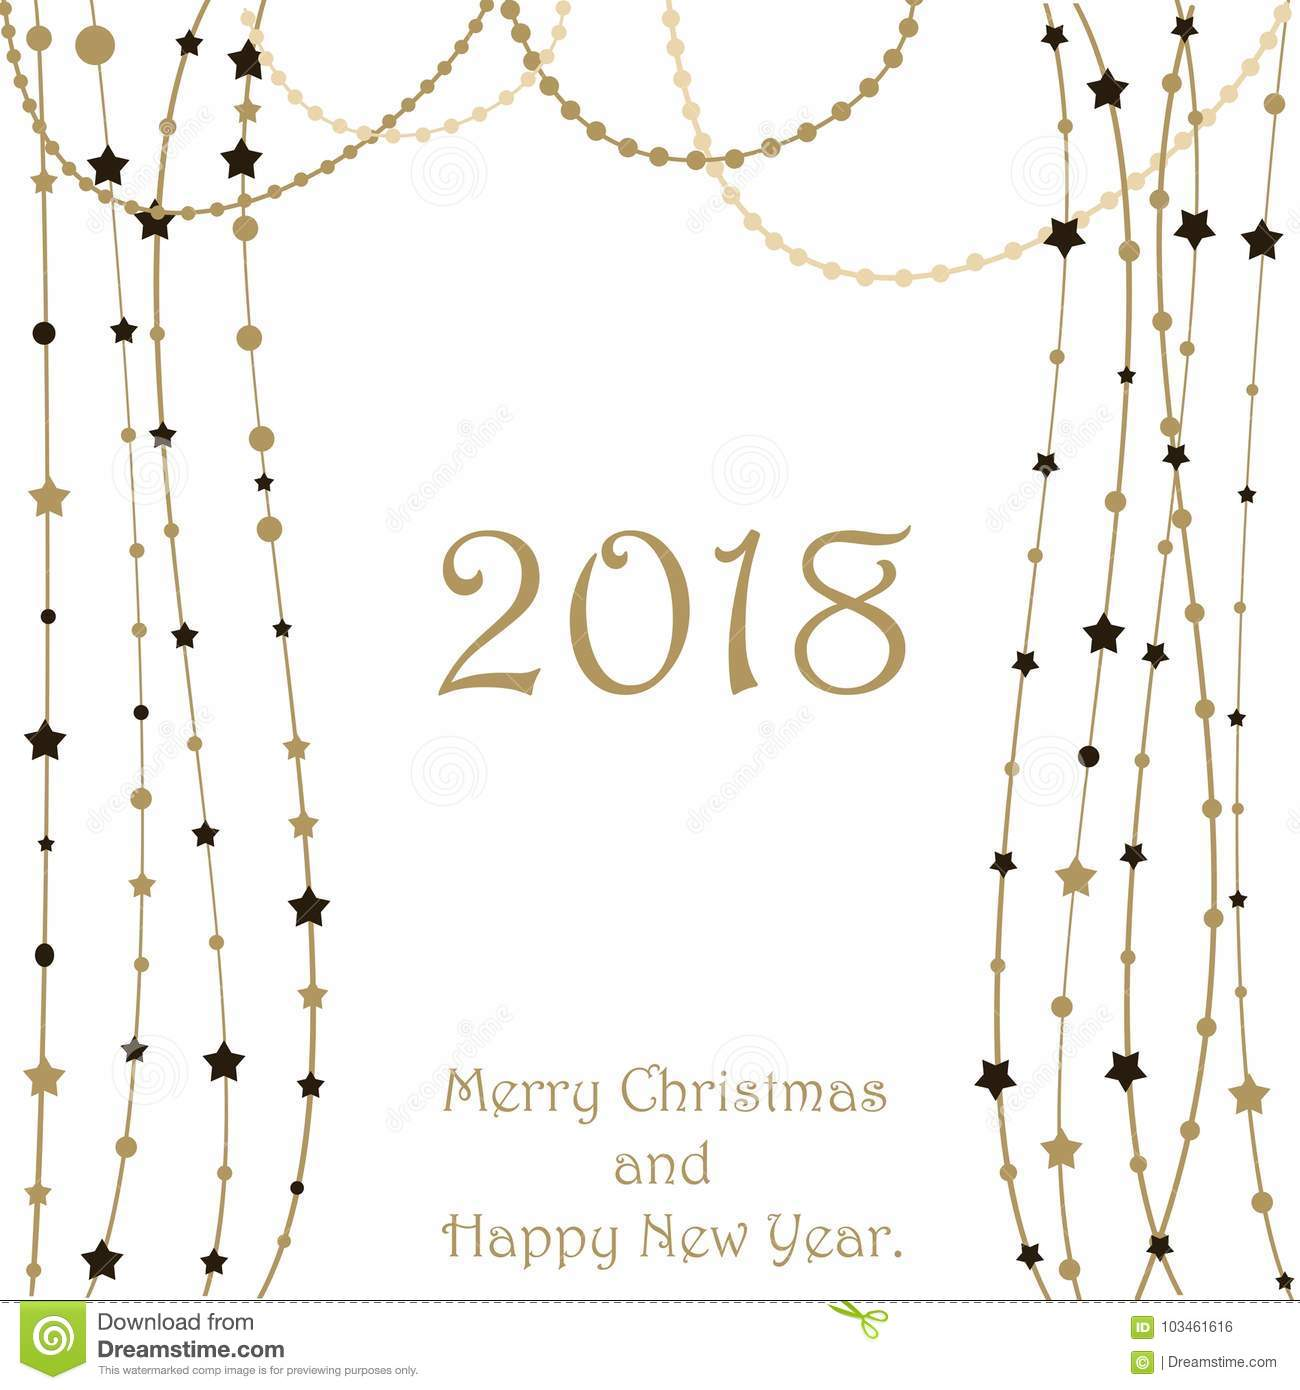 Happy New Year 2018 Greeting Card. Christmas Snow Background. Stock ...